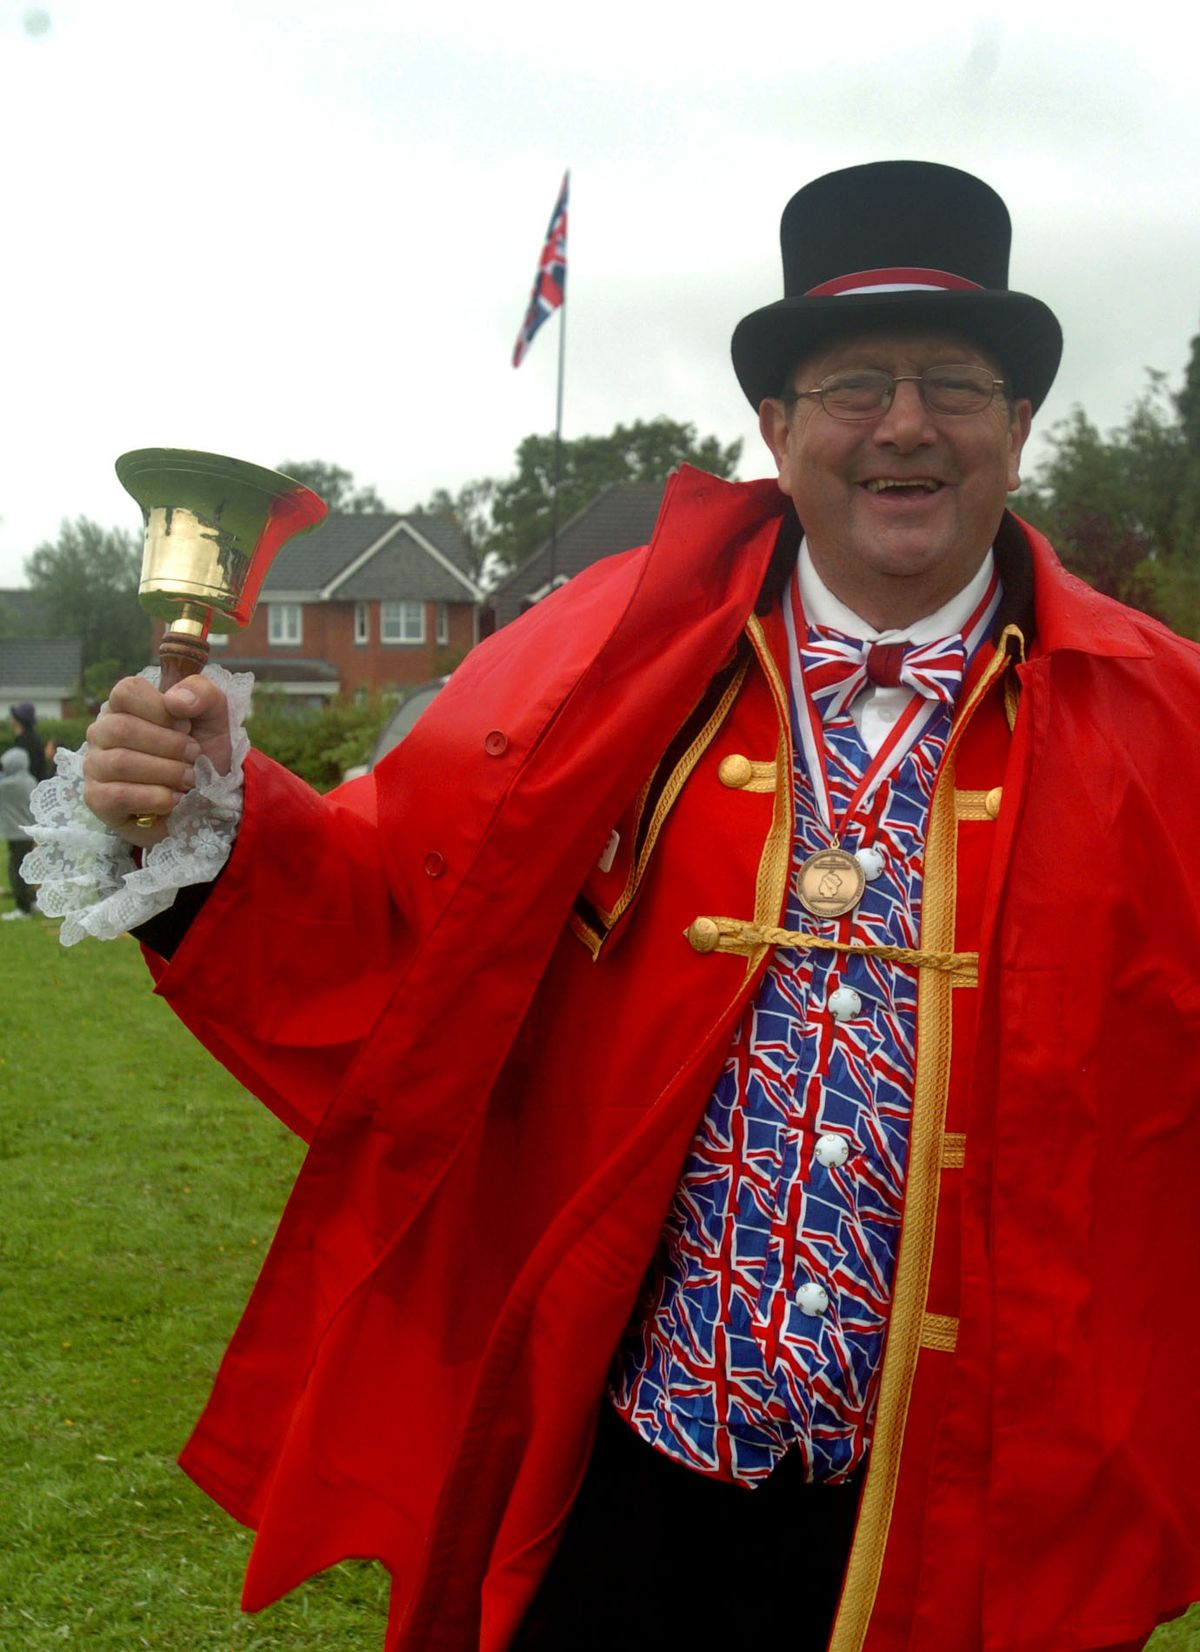 Market Drayton town crier Geoff Russell proclaiming the 2012 Diamond Jubilee